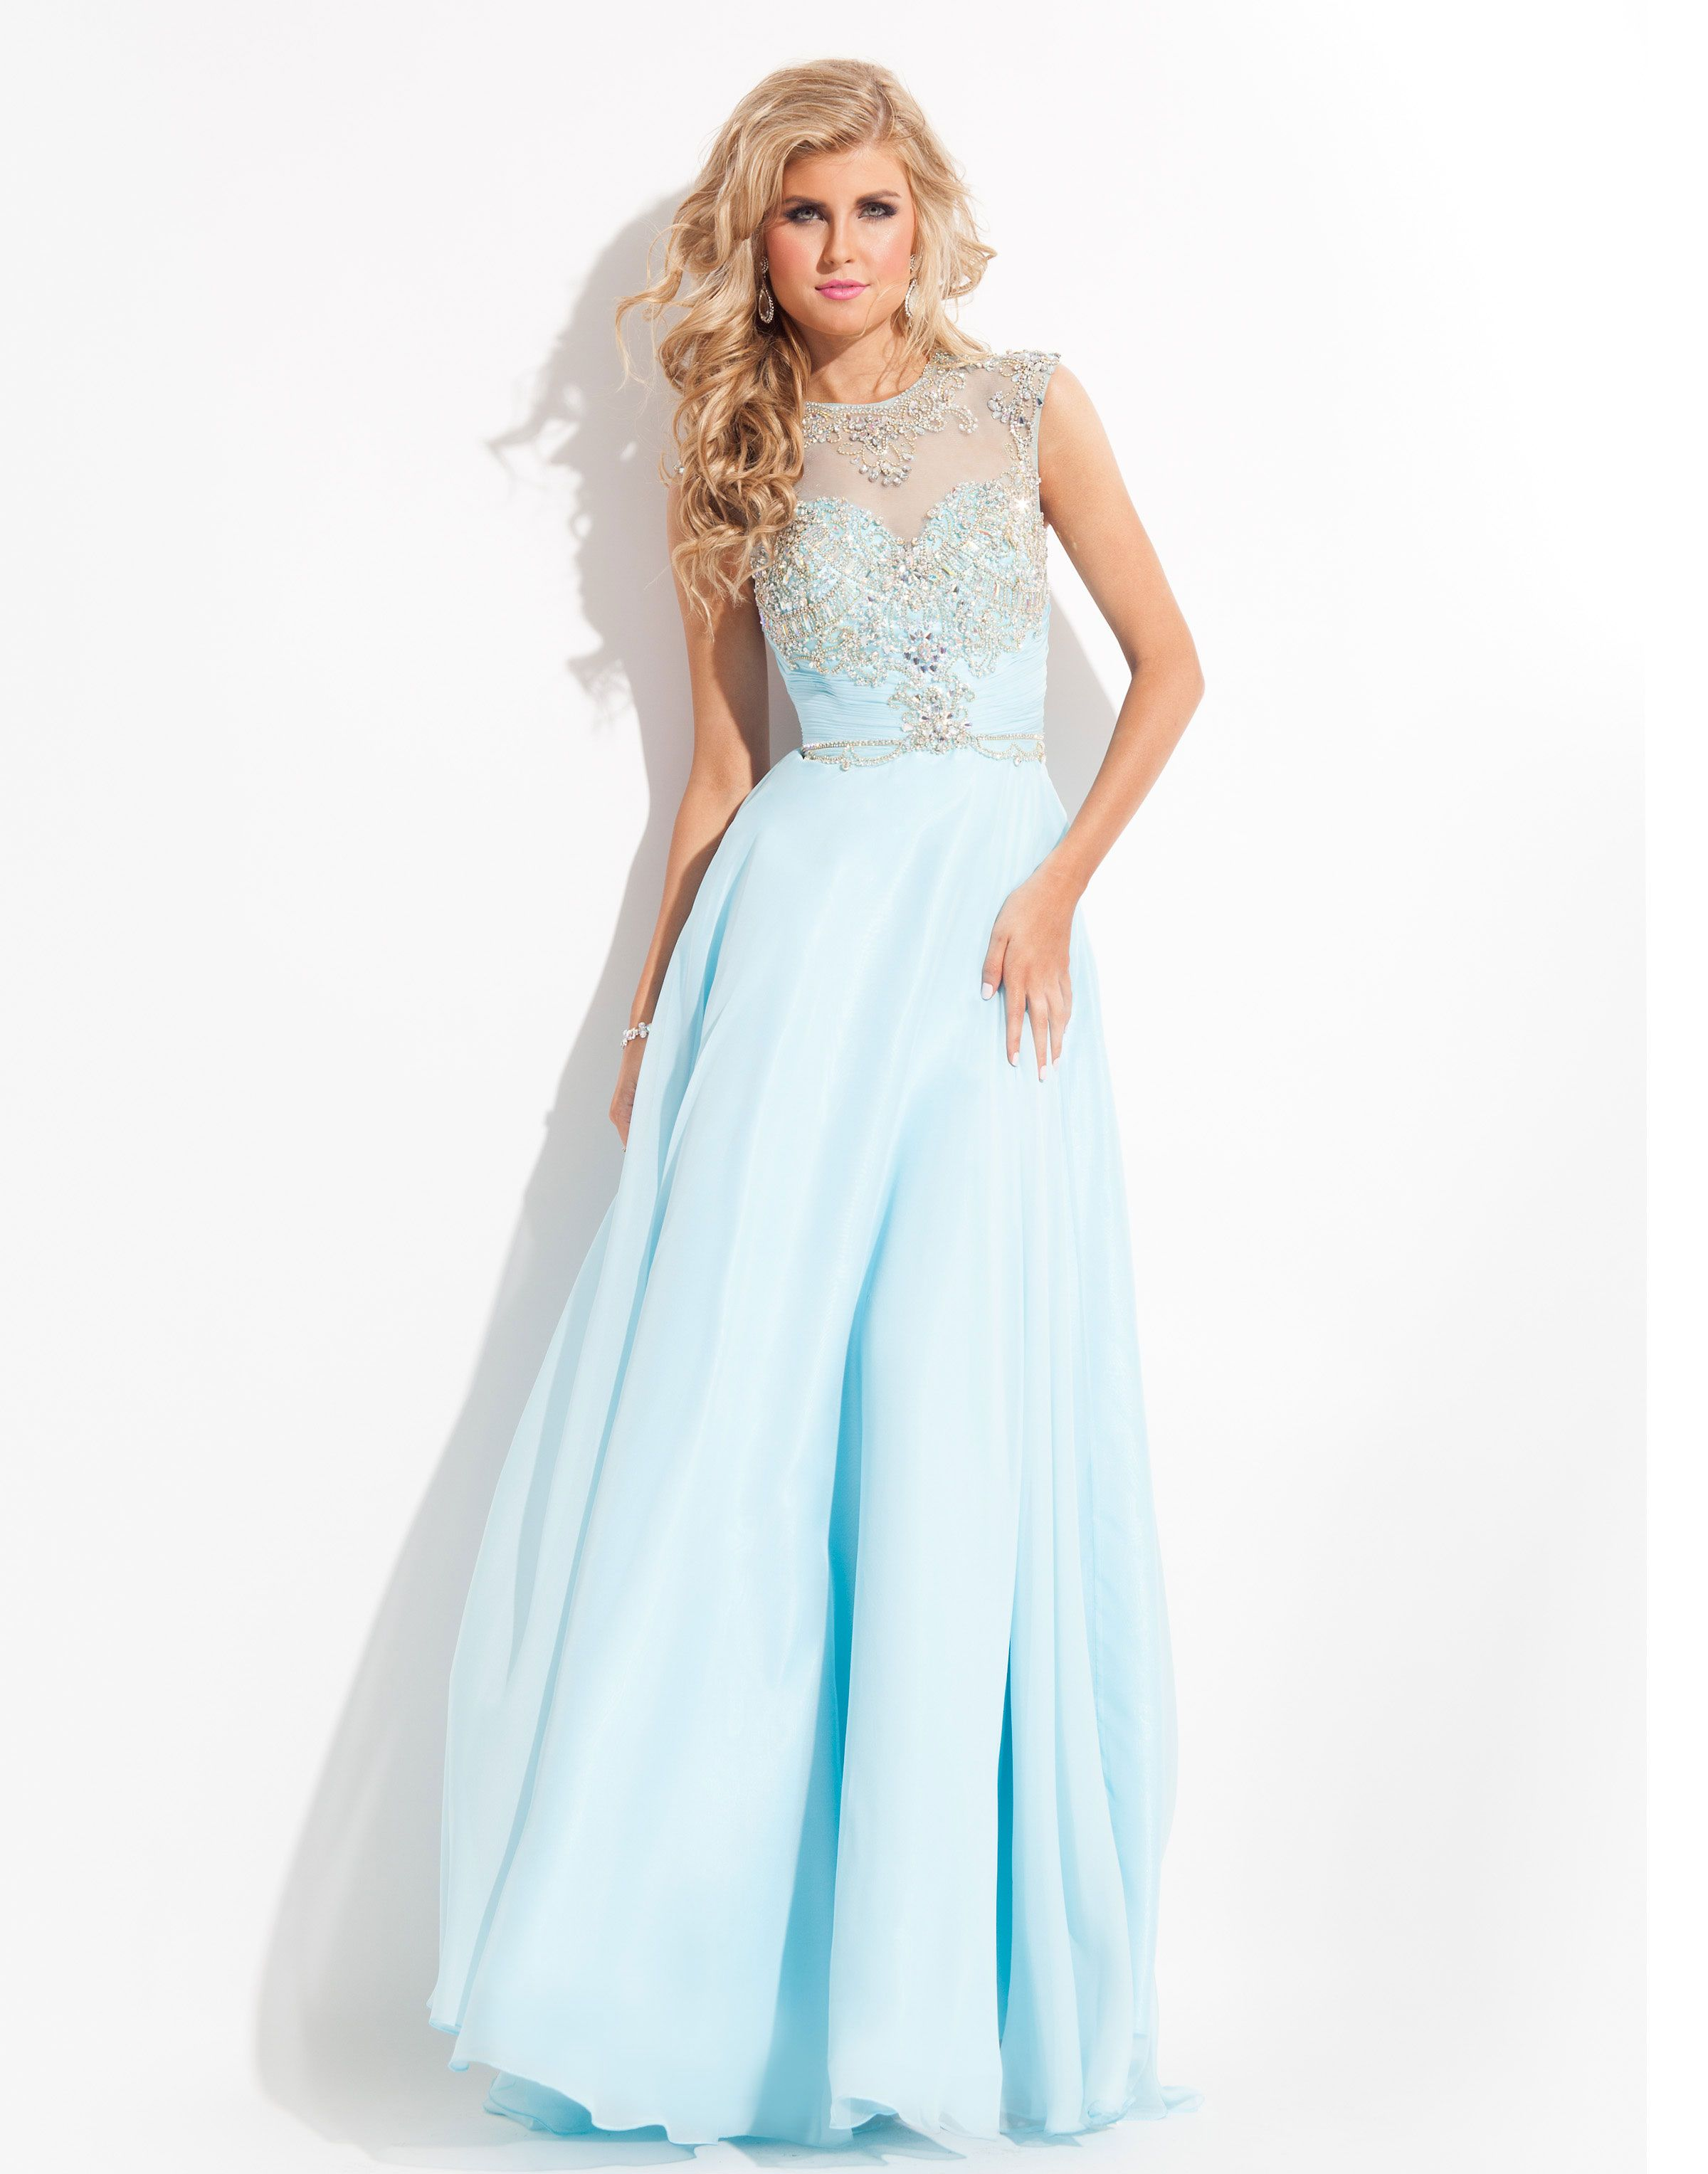 Wedding dresses for thin figures  Embellished Prom Dresses  Bodice and Light blue